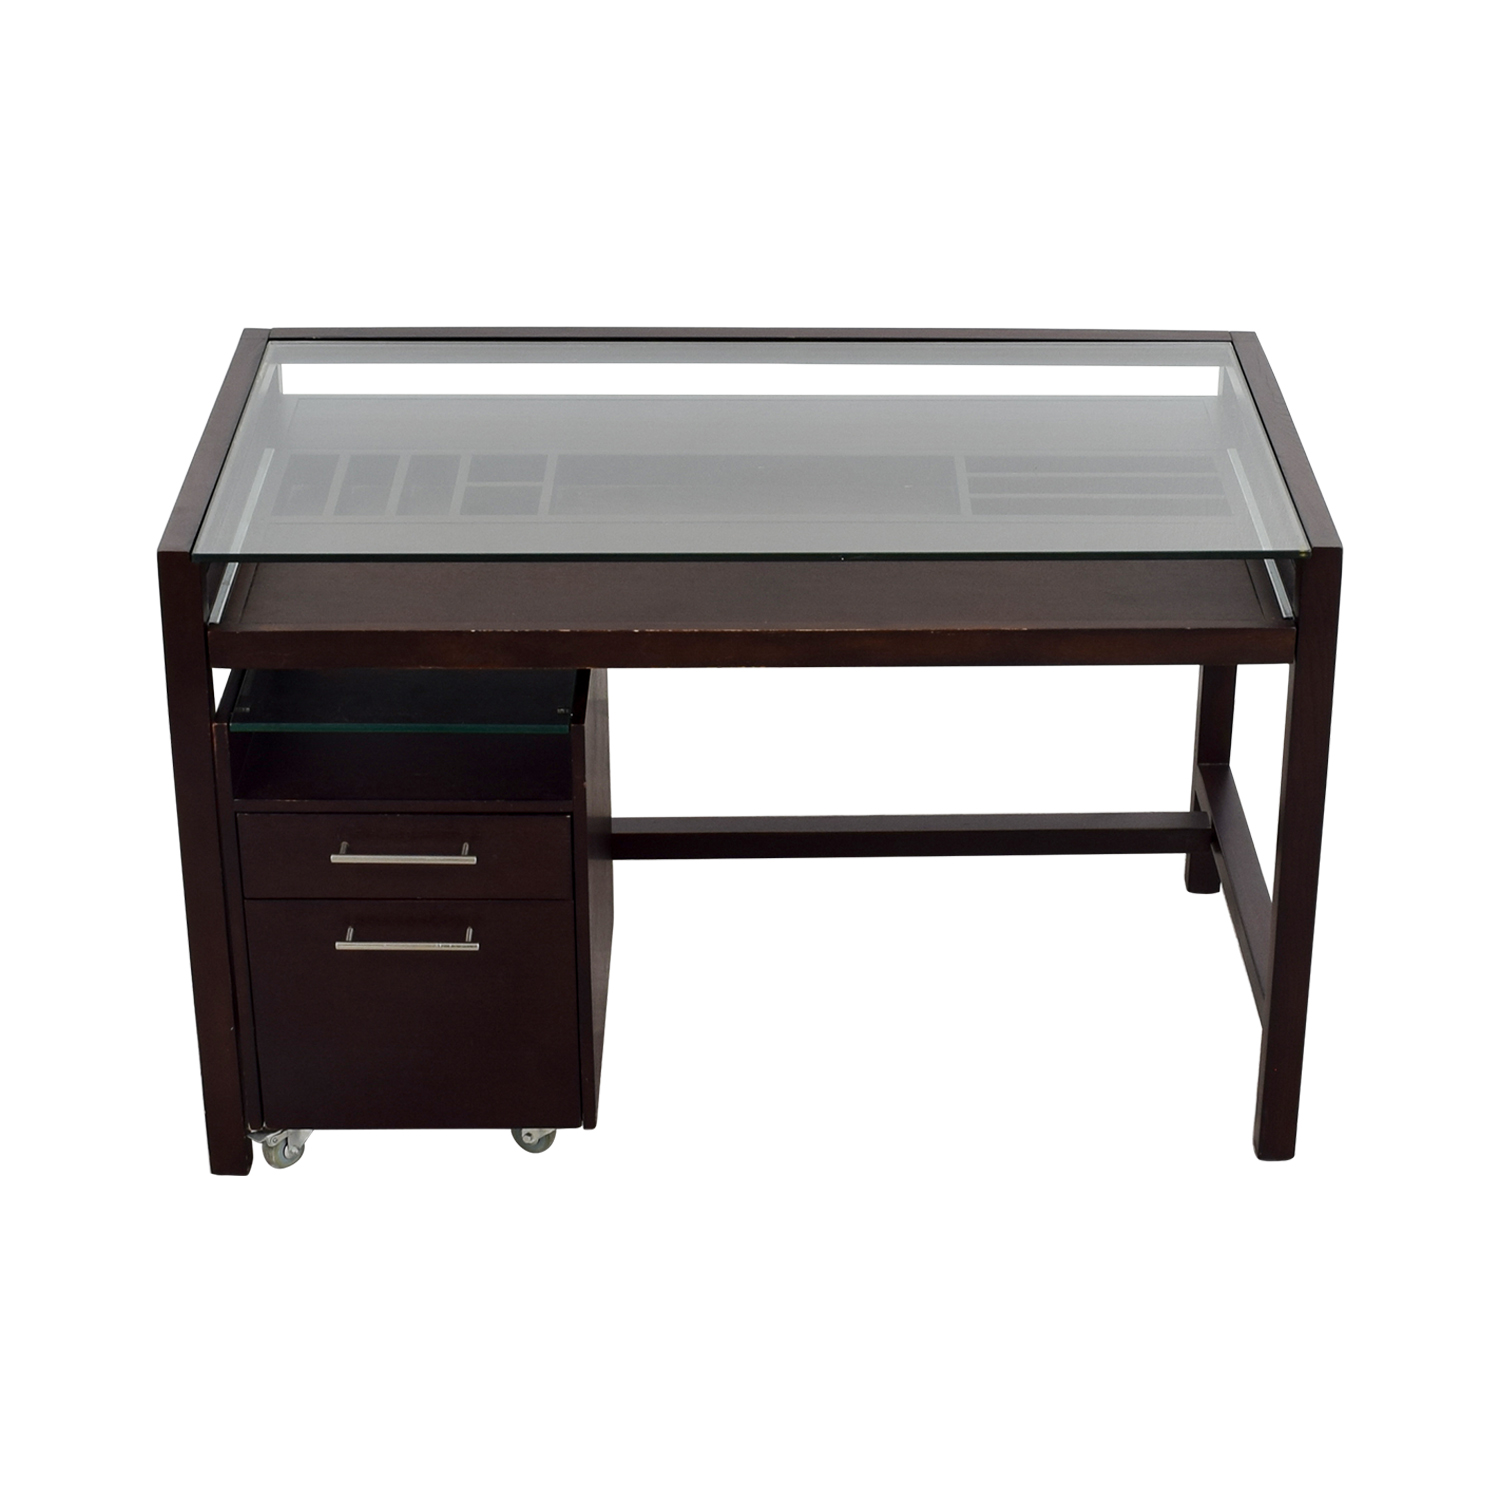 90 OFF  GlassTop Dark Brown Wood Desk with File Cabinet